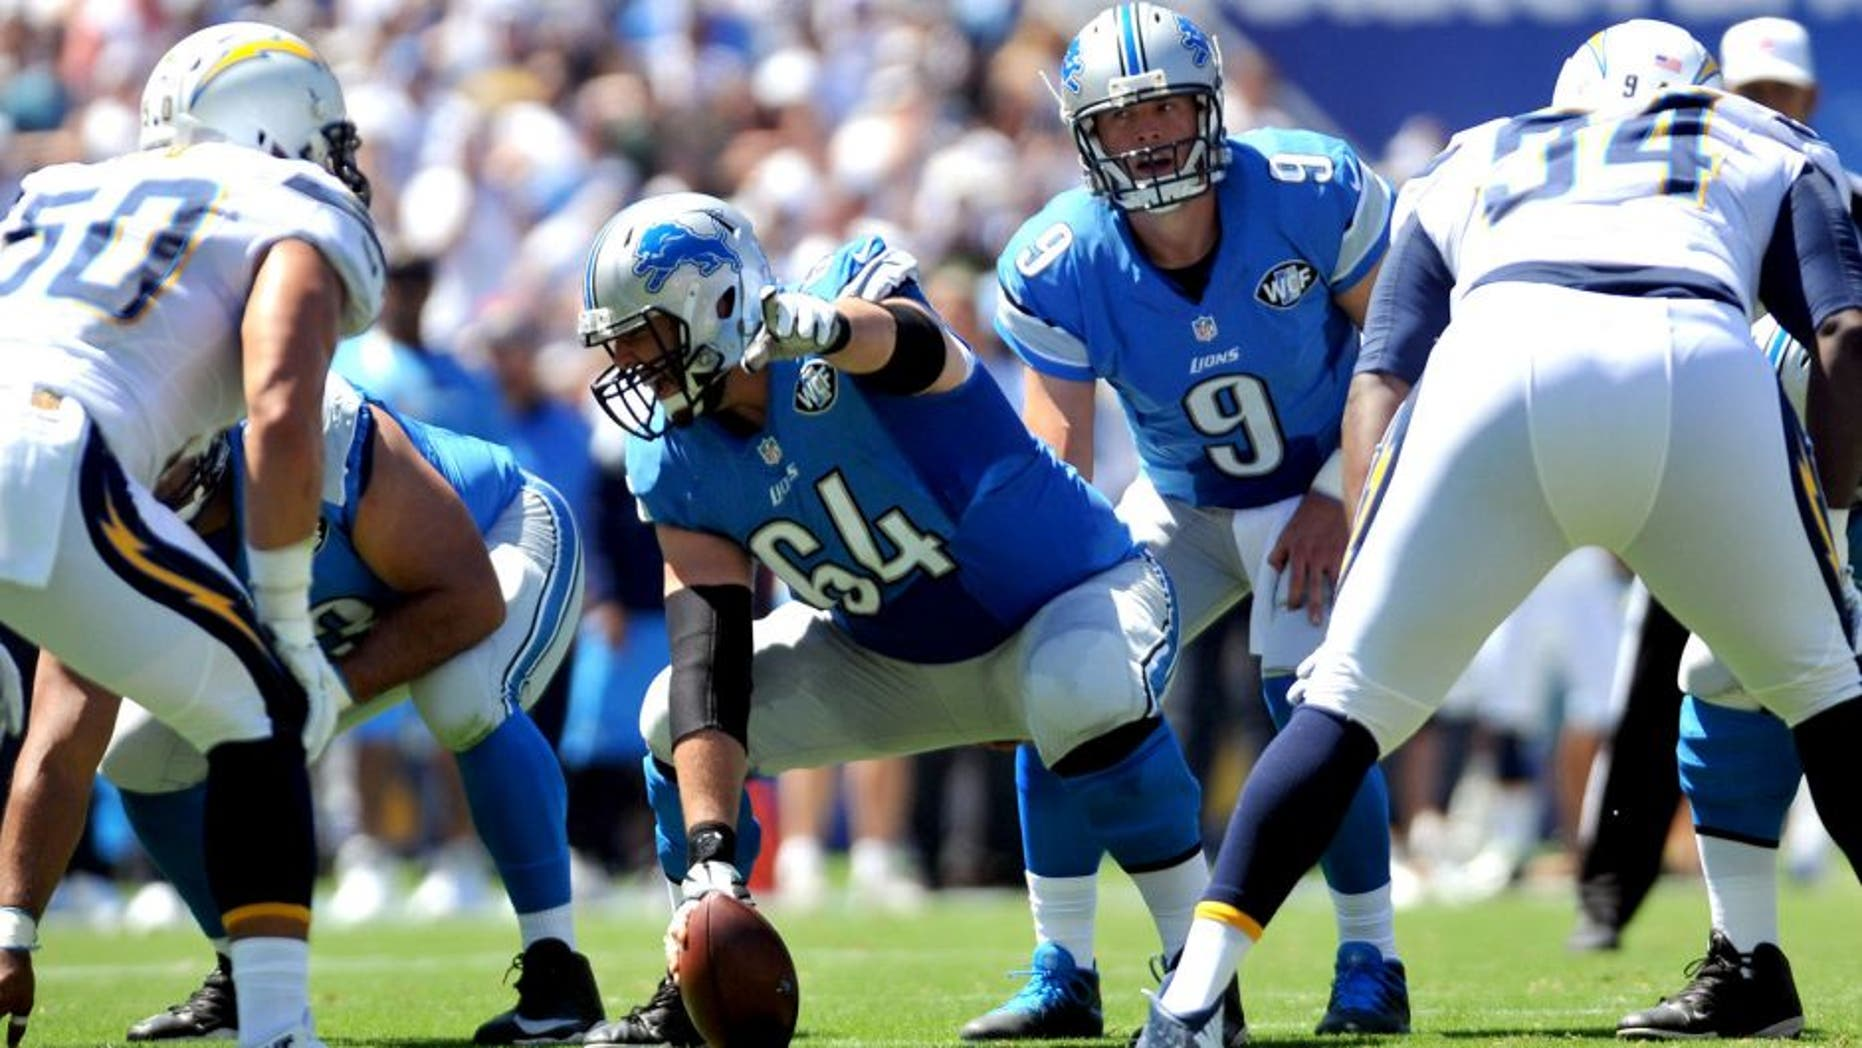 Sep 13, 2015; San Diego, CA, USA; Detroit Lions center Travis Swanson (64) points out a defensive player during the game against the San Diego Chargers at Qualcomm Stadium. San Diego won 33-28. Mandatory Credit: Orlando Ramirez-USA TODAY Sports